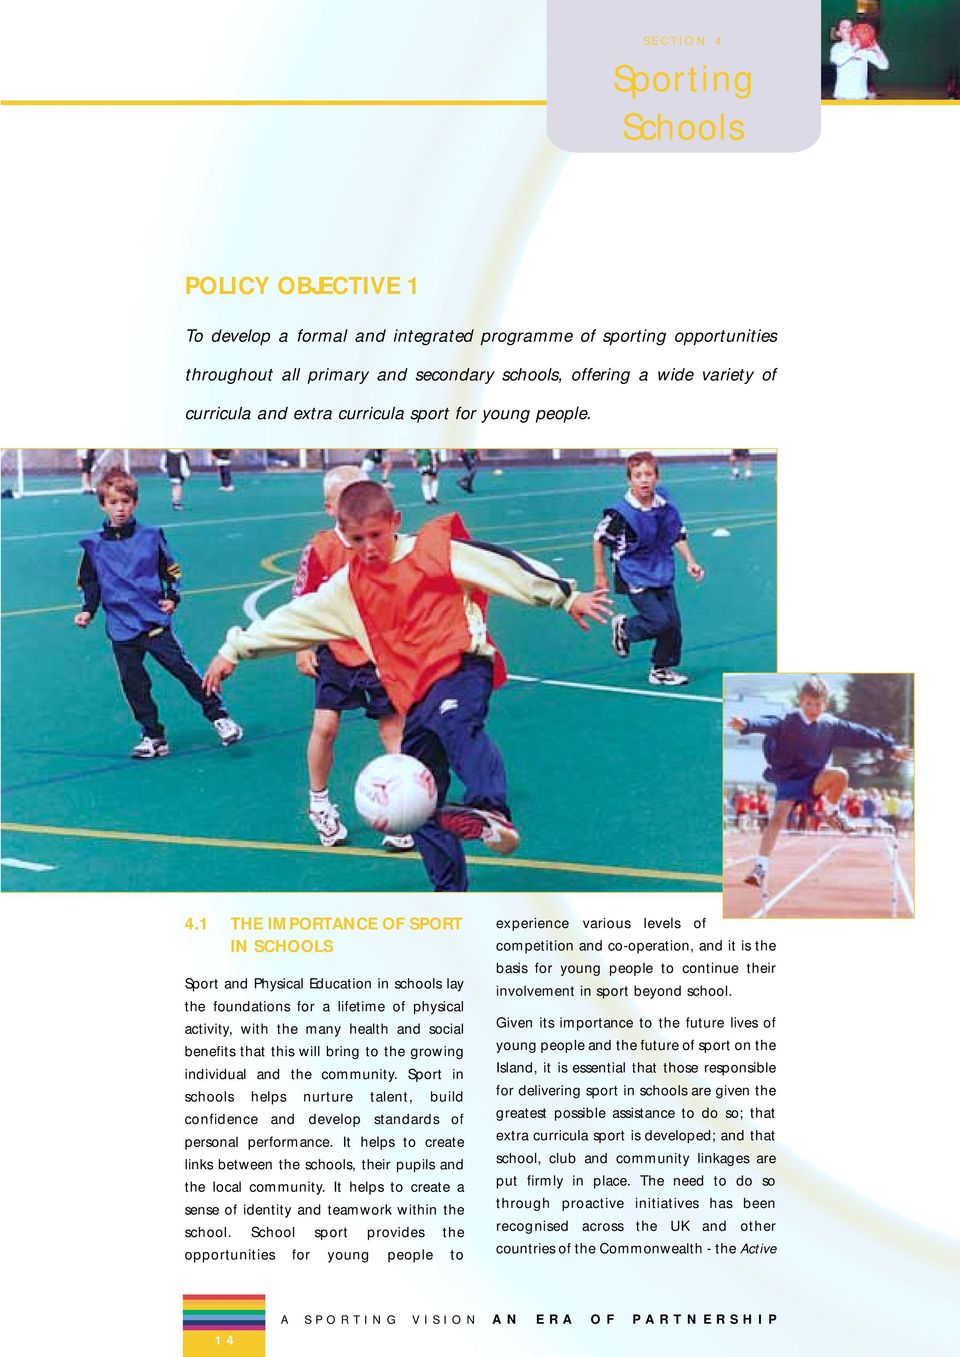 1 THE IMPORTANCE OF SPORT IN SCHOOLS Sport and Physical Education in schools lay the foundations for a lifetime of physical activity, with the many health and social benefits that this will bring to